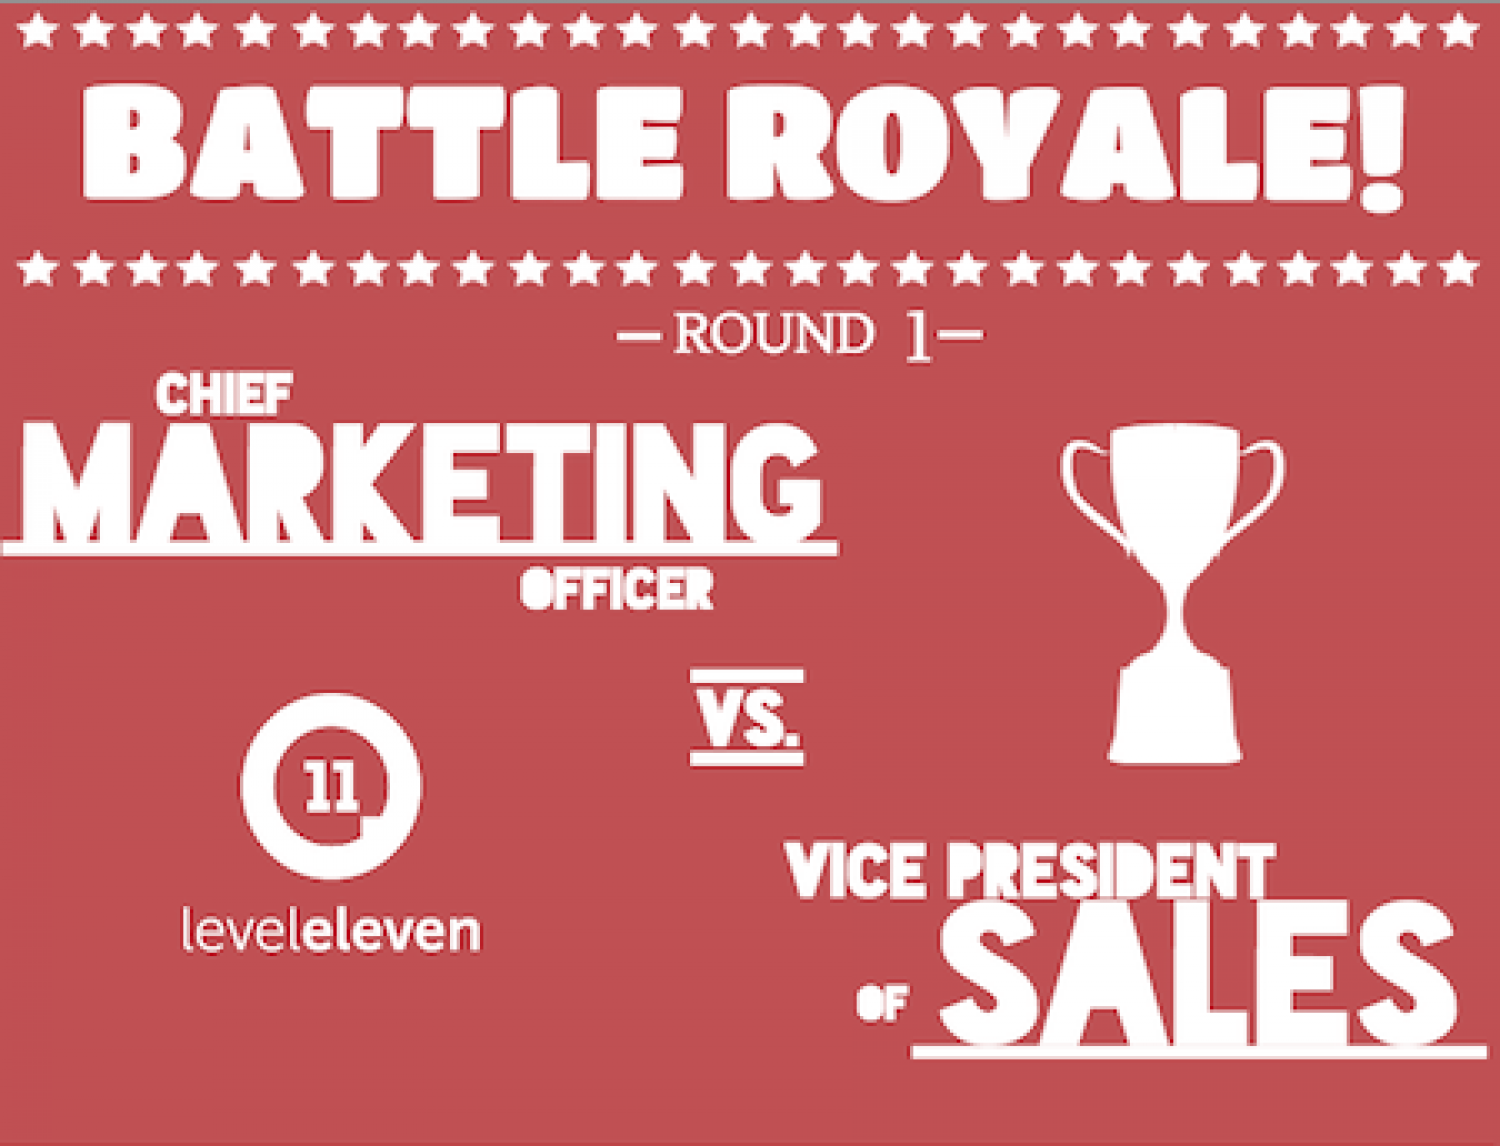 Battle Royale! Sales vs. Marketing & the Fight for Alignment Infographic